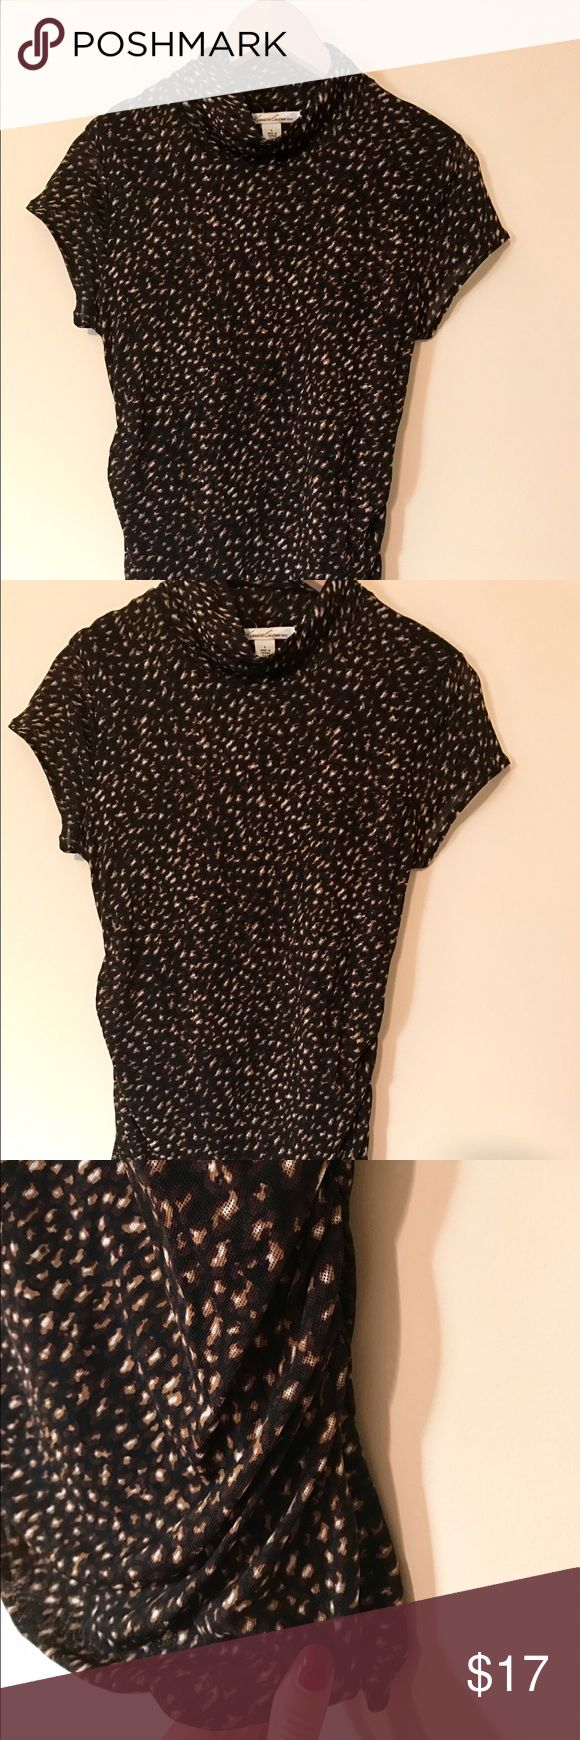 Kenneth Cole Animal Print Top Eye catching animal print top, with cowl neck, short sleeves, and rouching on sides. Flattering and can be worn different seasons. EUC. 100% nylon. Kenneth Cole Tops